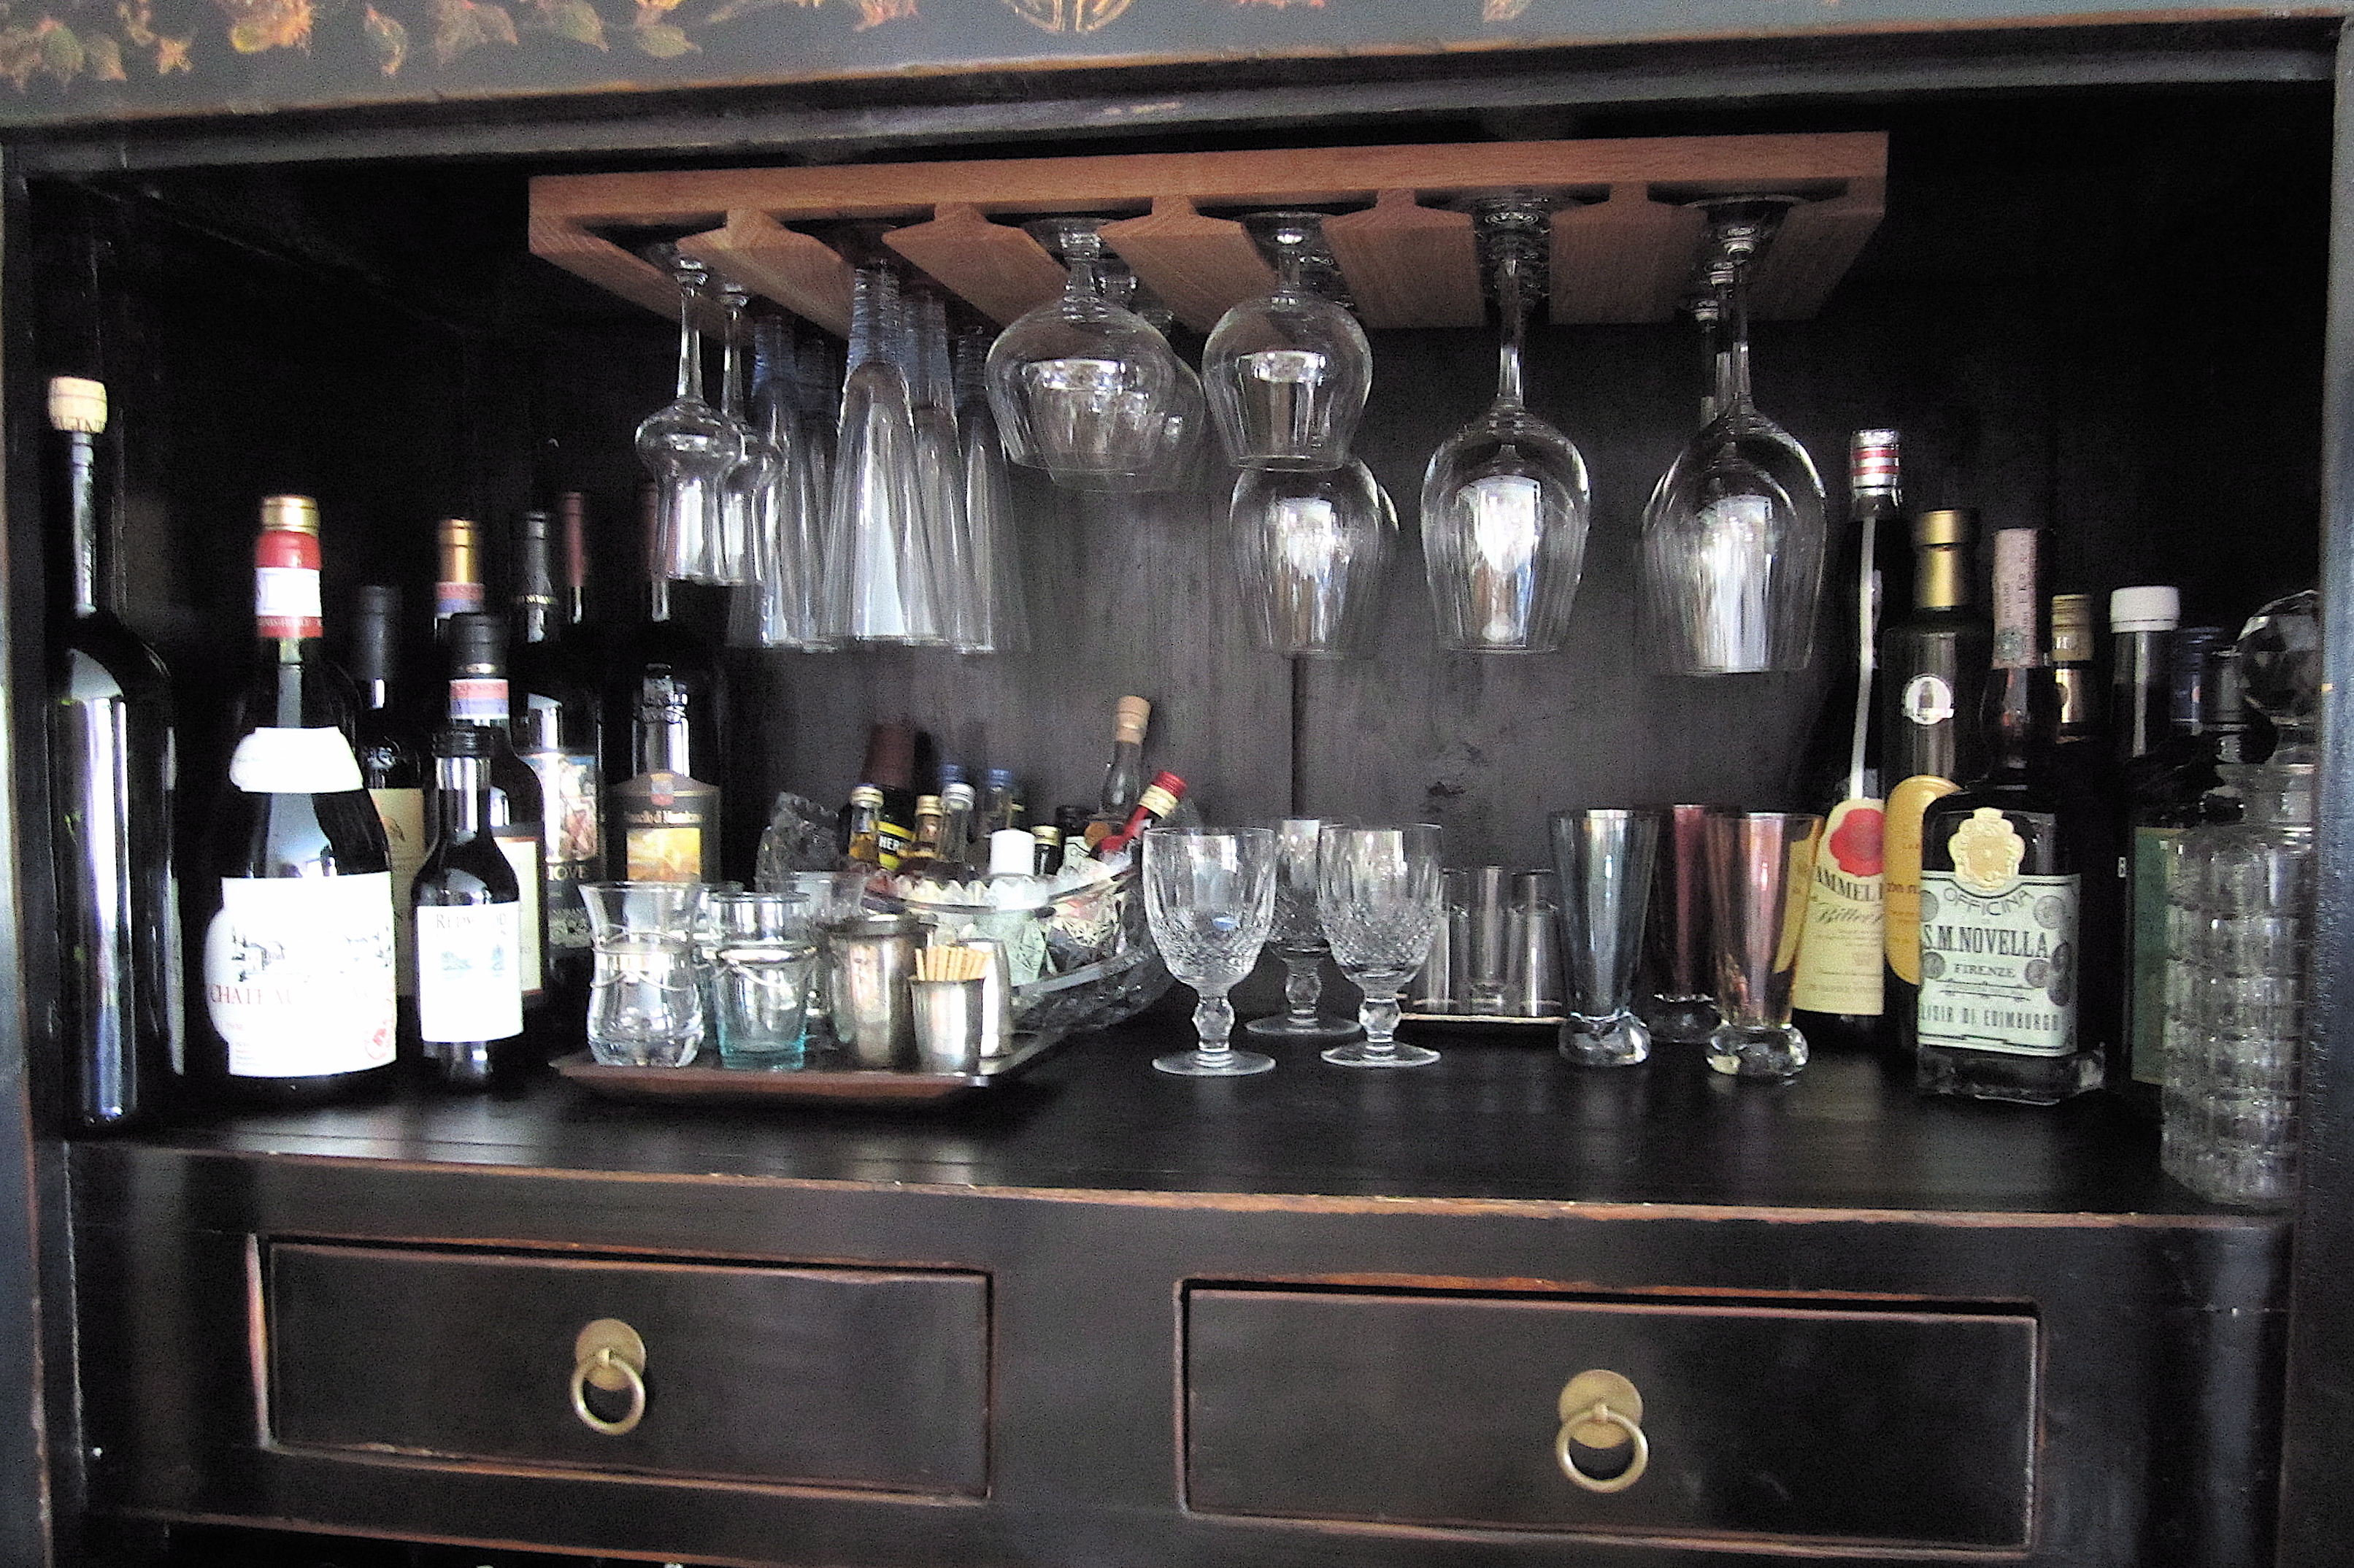 when i saw this cabinet i wait to get my hands on it at the head of the dining table i knew it would be great as a serving station or